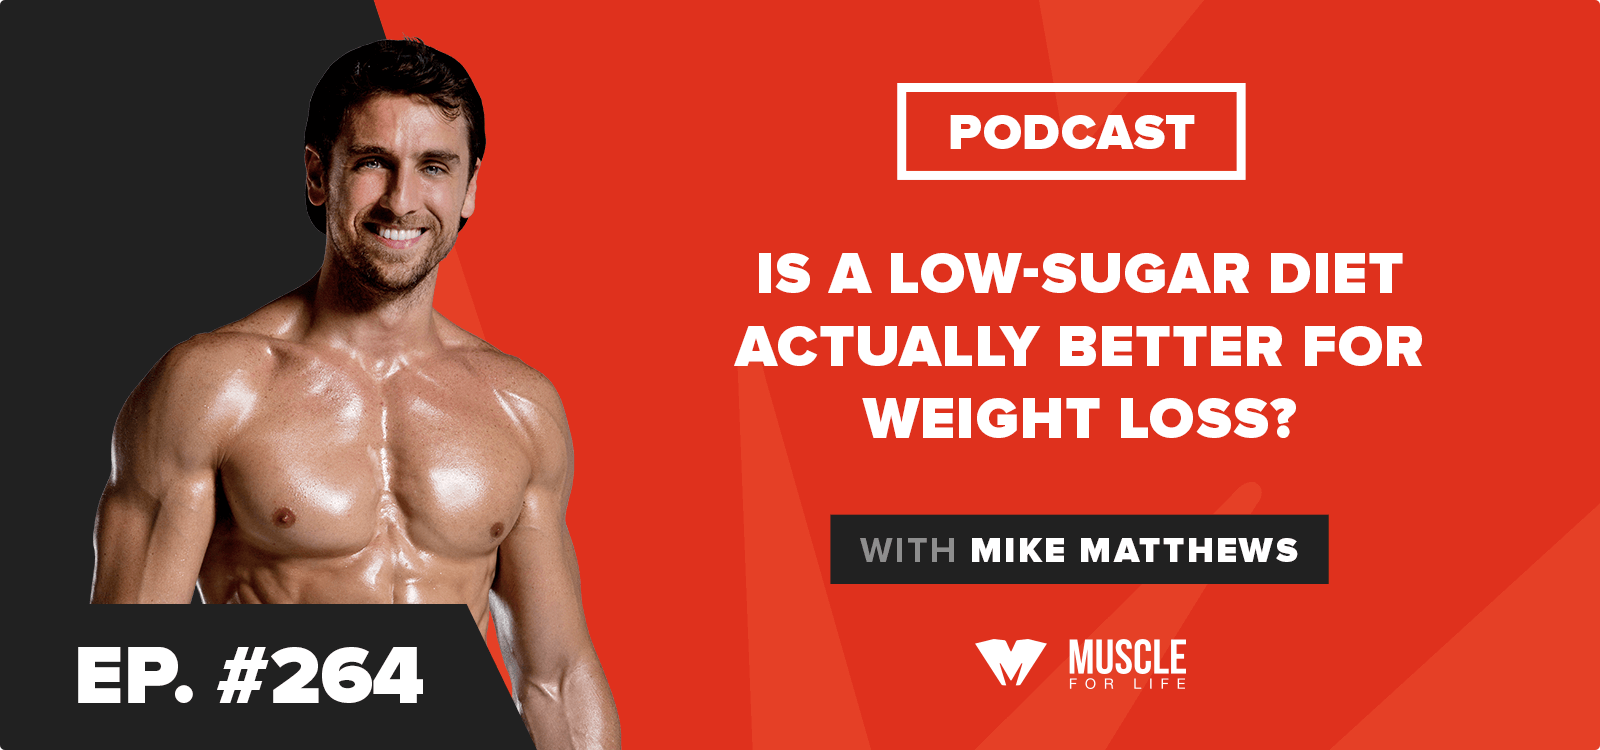 Is a Low-Sugar Diet Actually Better For Weight Loss?